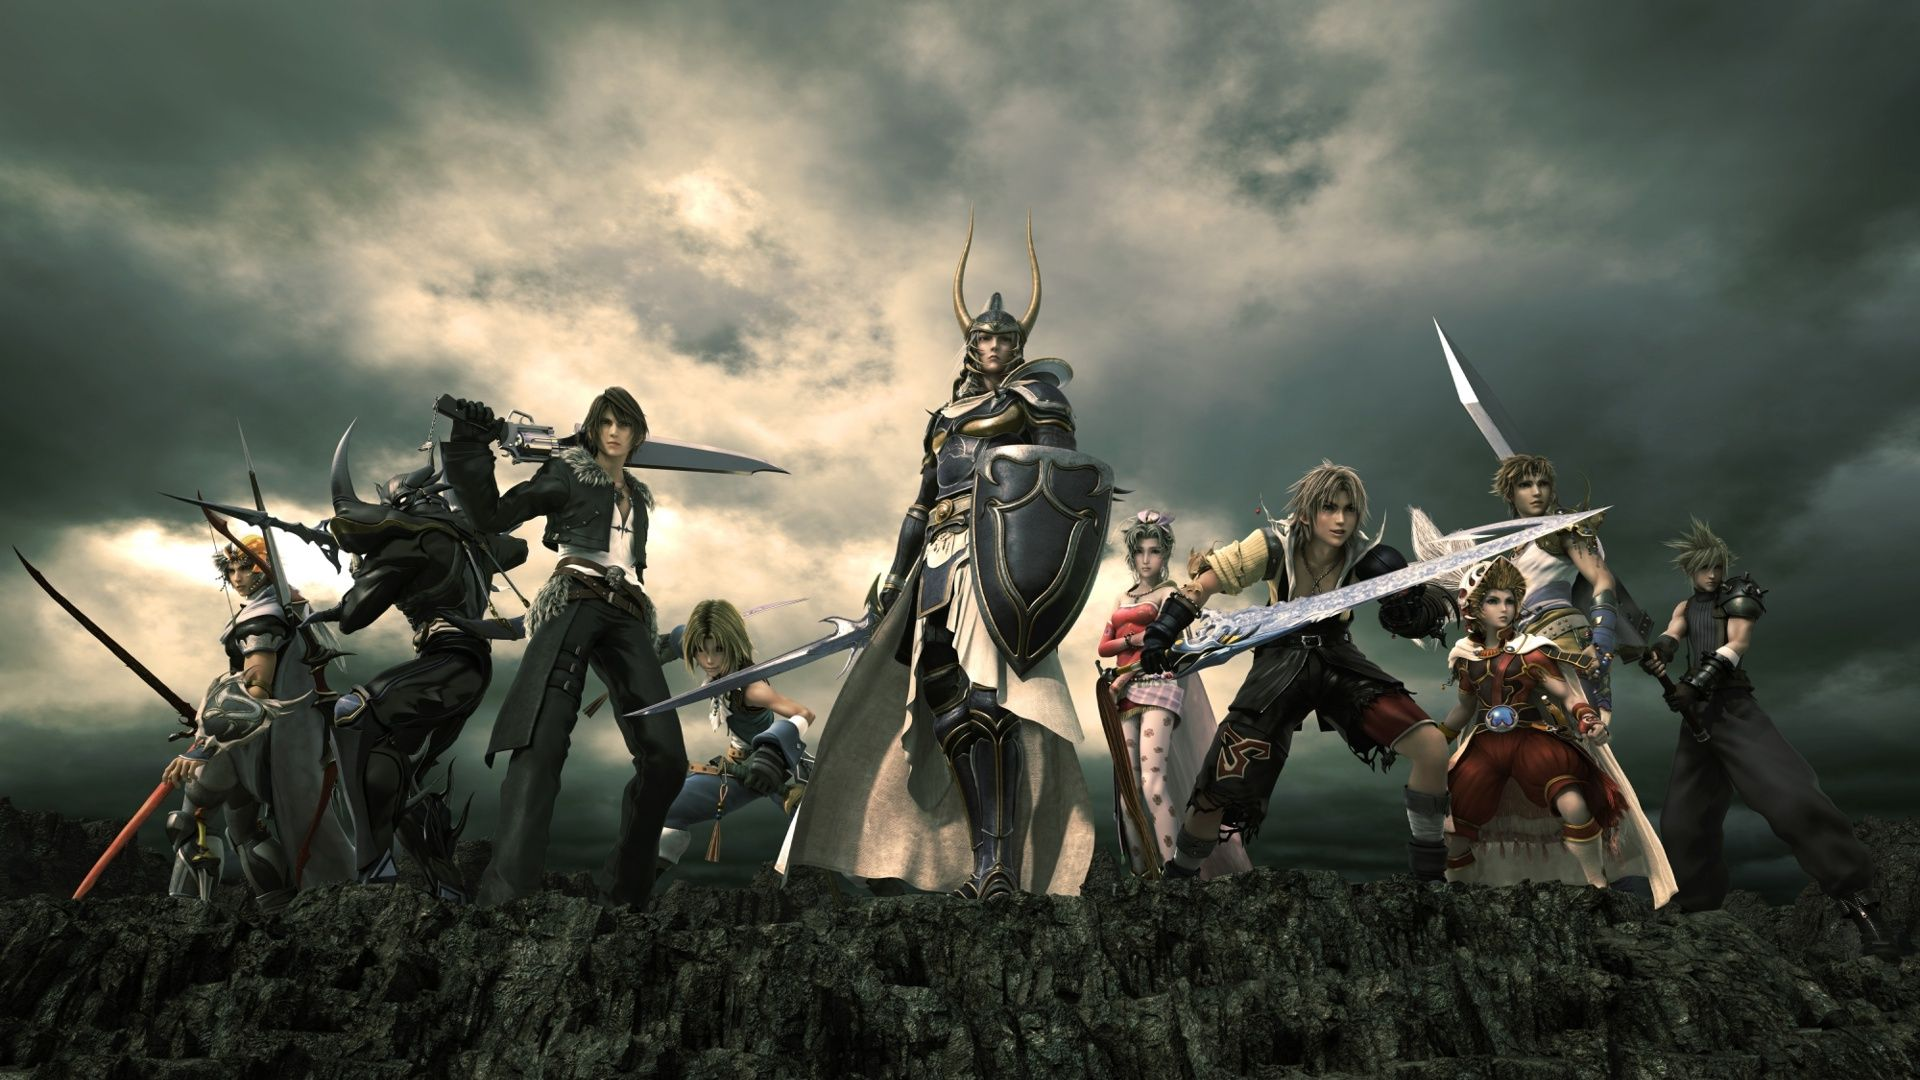 Final Fantasy Hd 1920x1080 Wallpapers 1920x1080 Wallpapers